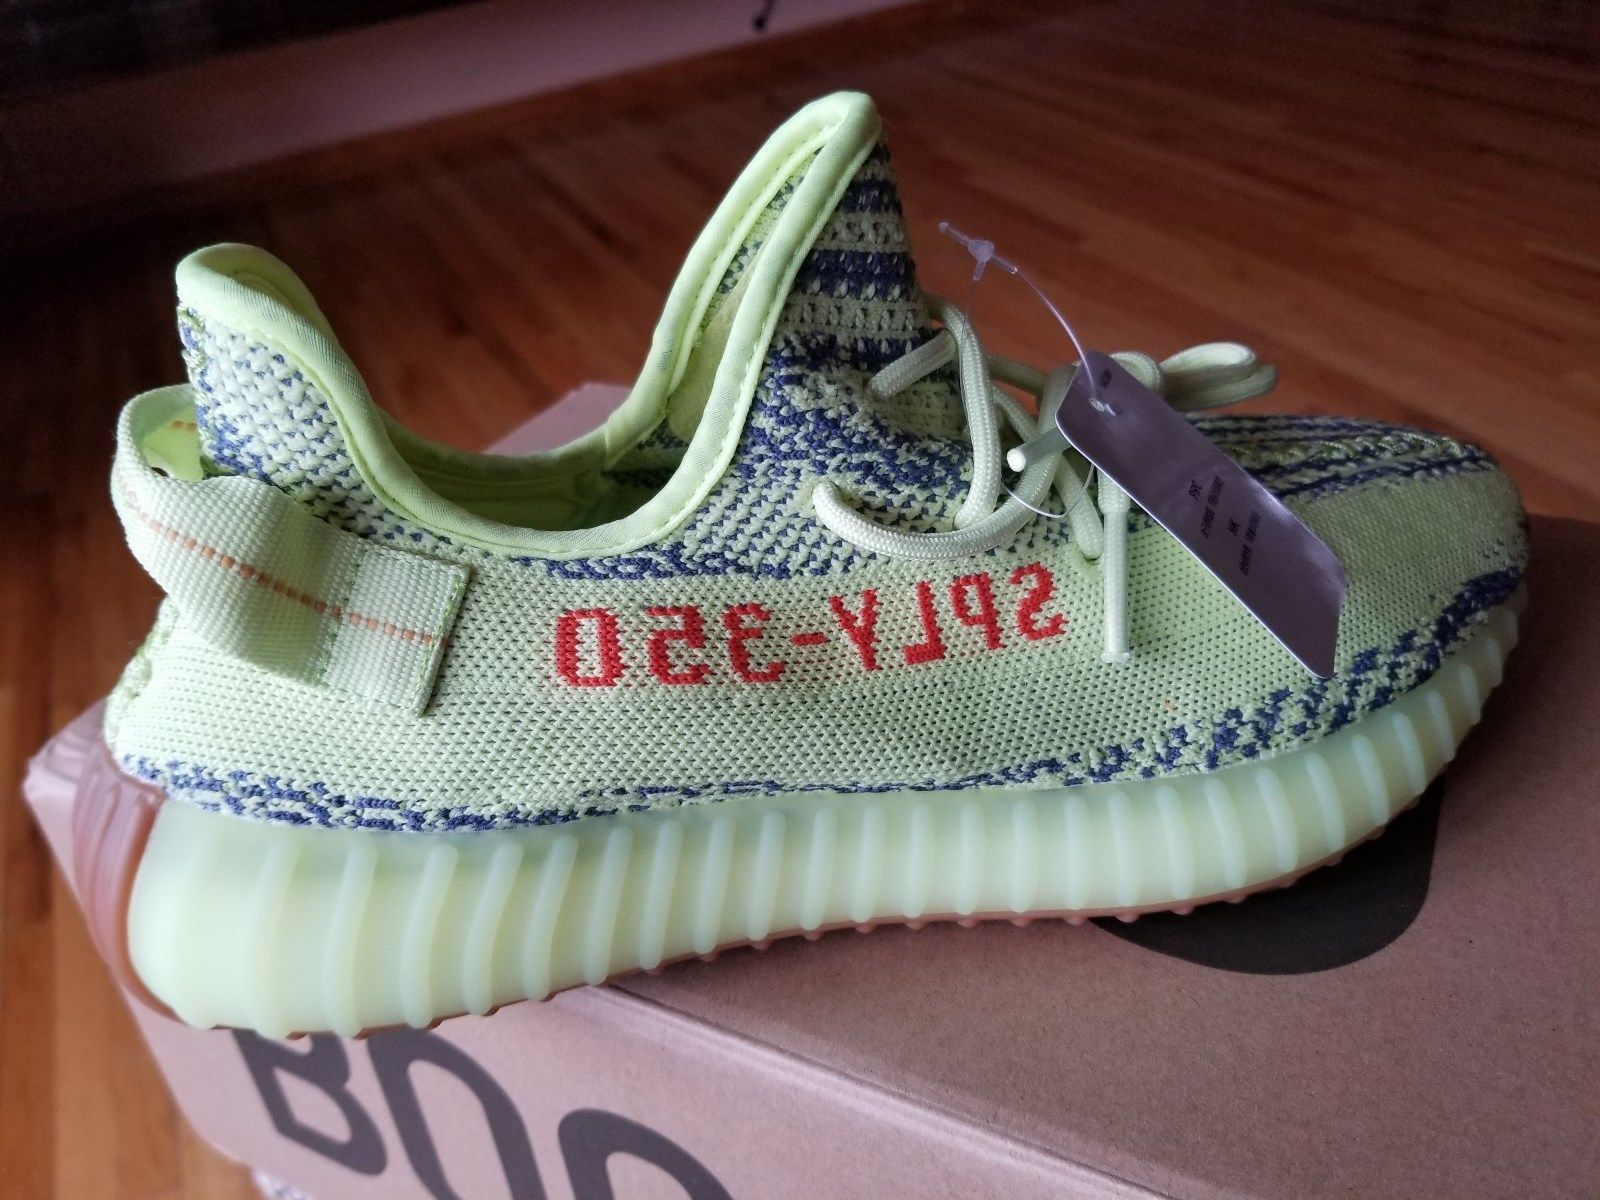 e9bdc8e2cd5 ... new zealand adidas yeezy boost 350 v2 semi frozen yellow sply 350 brand  new in box